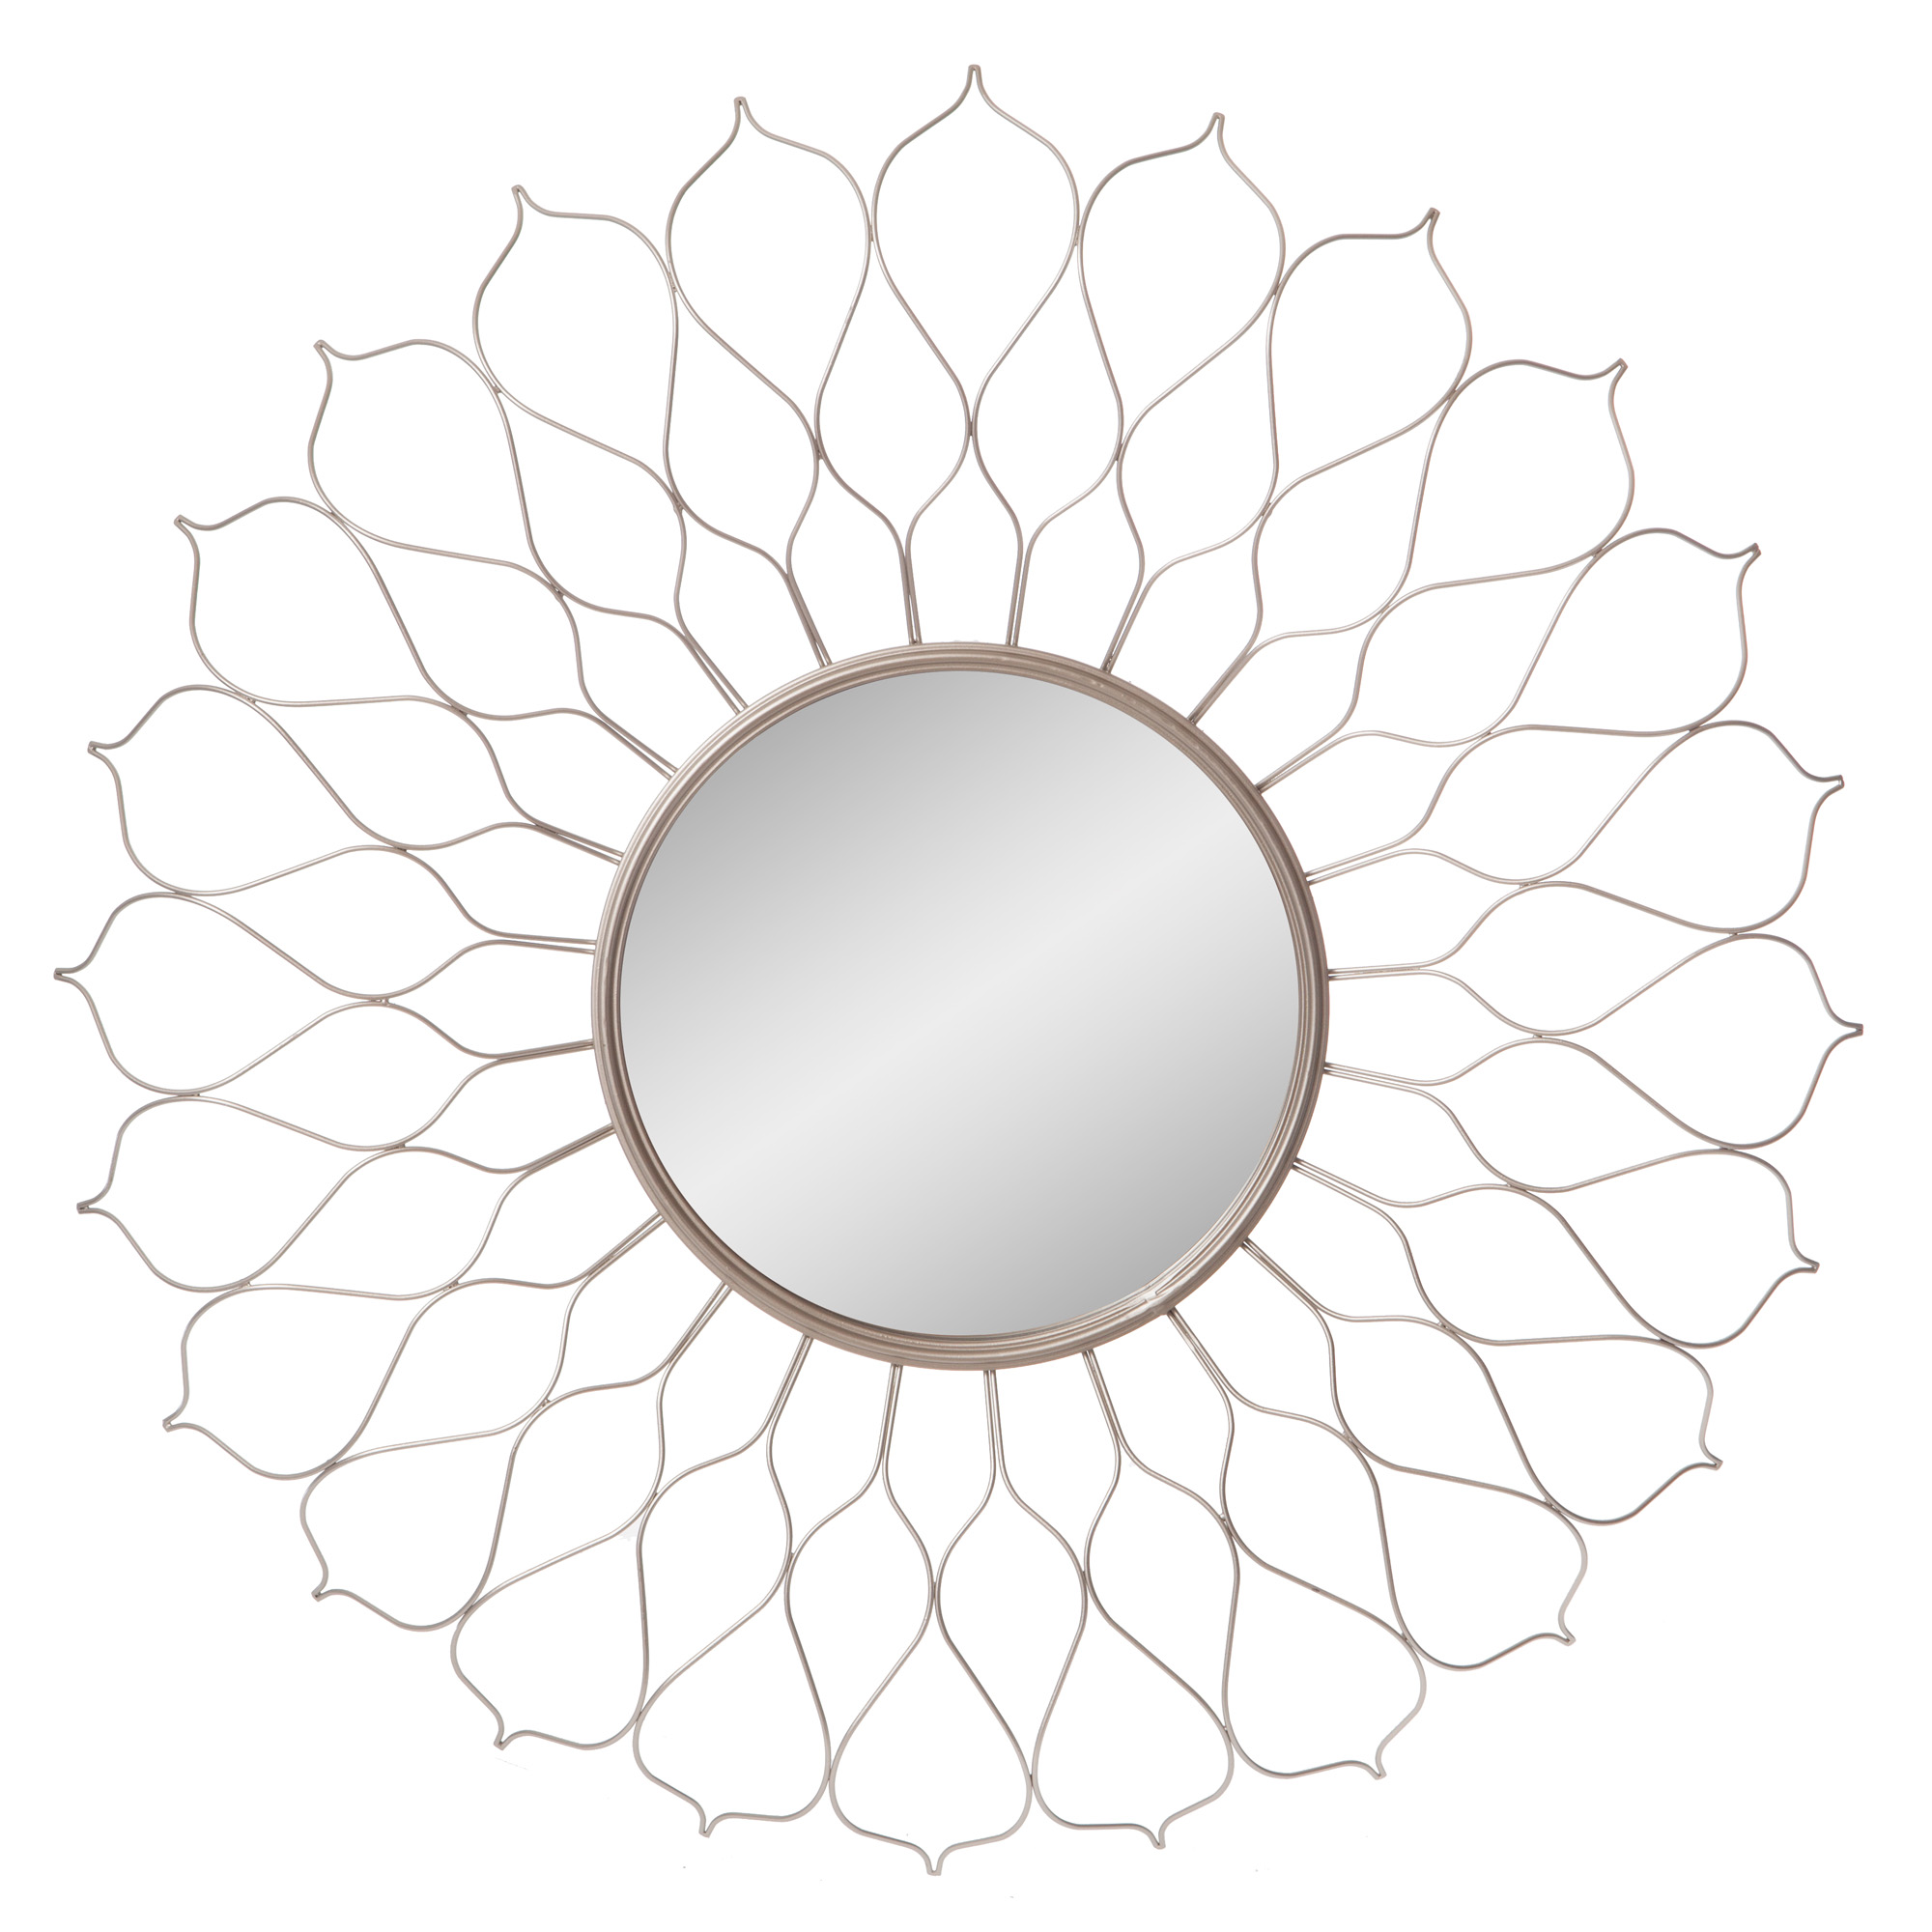 Silver Round Flower Petal Sunburst Wall Accent Mirror 38 X38 By Patton Wall Decor Walmart Com Walmart Com